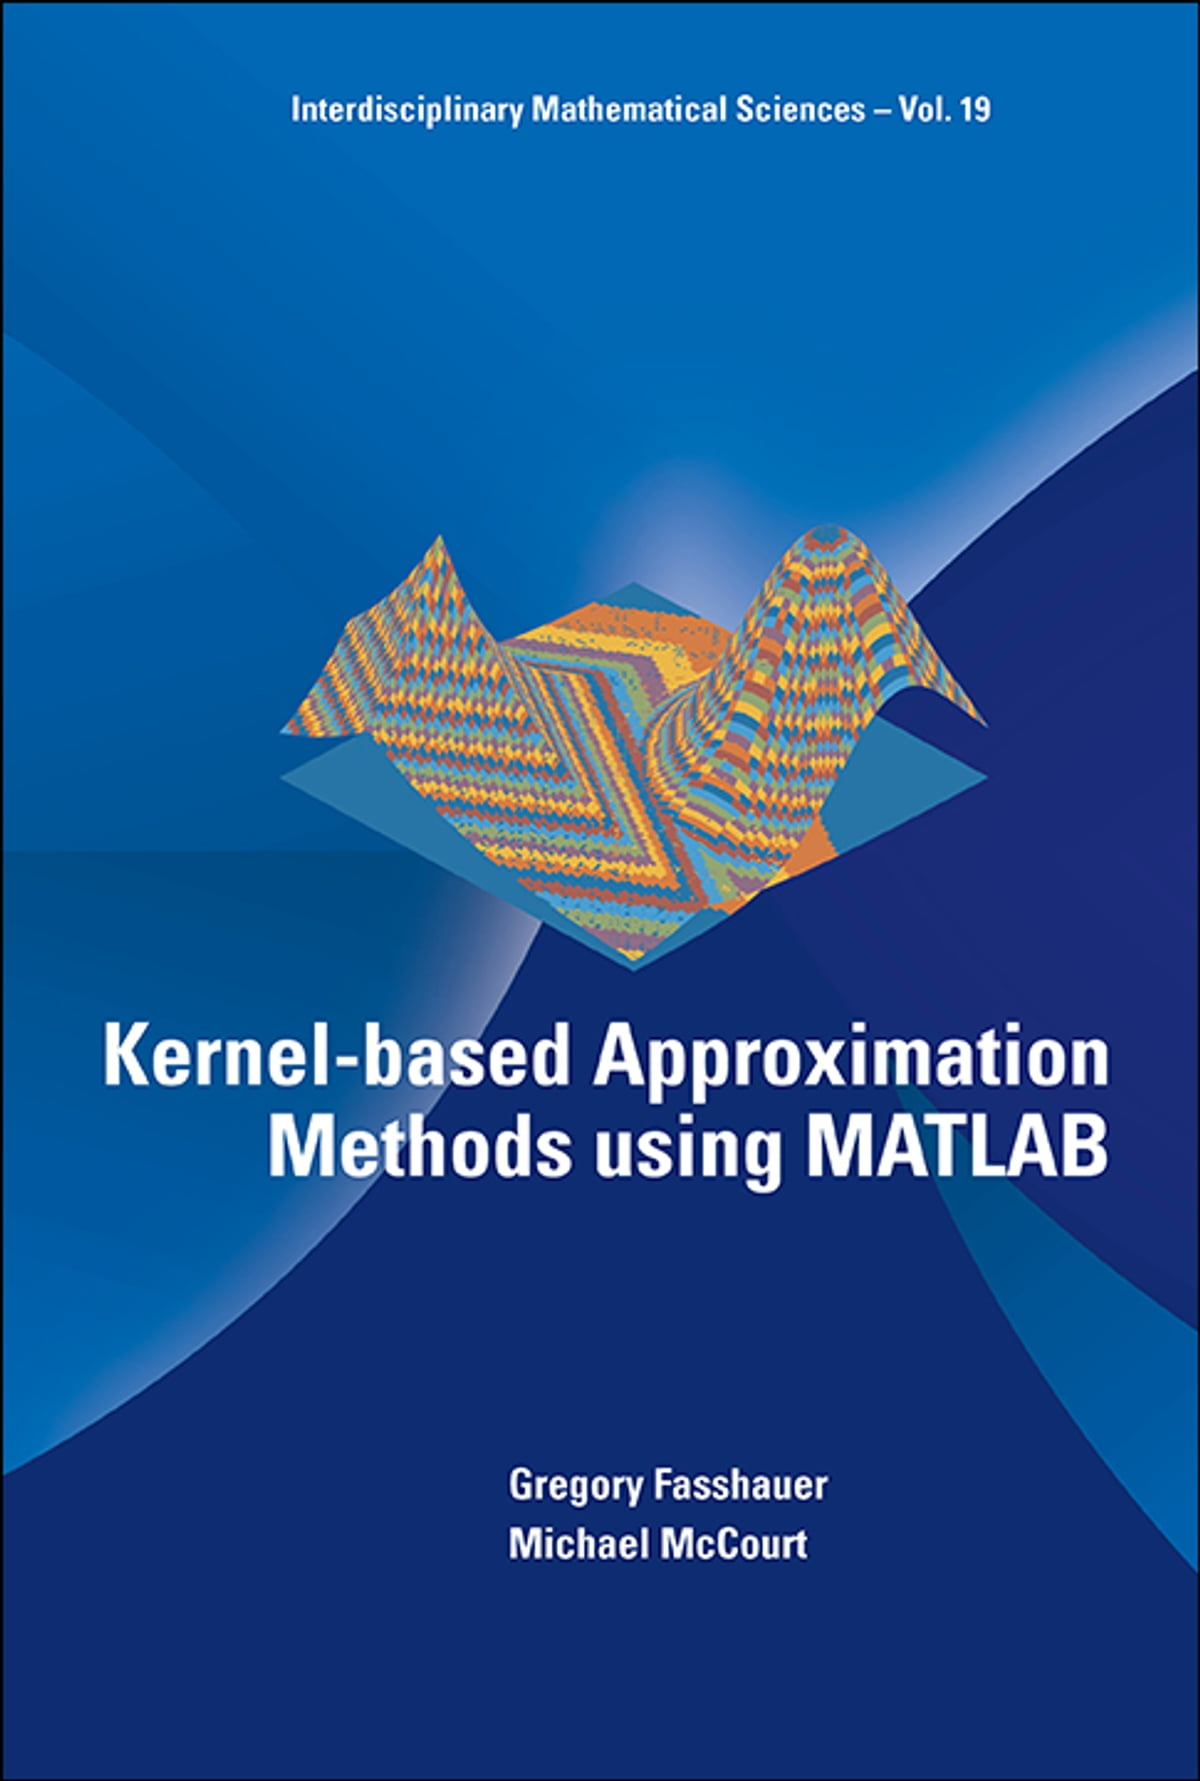 Kernel-based Approximation Methods using MATLAB ebook by Gregory Fasshauer  - Rakuten Kobo